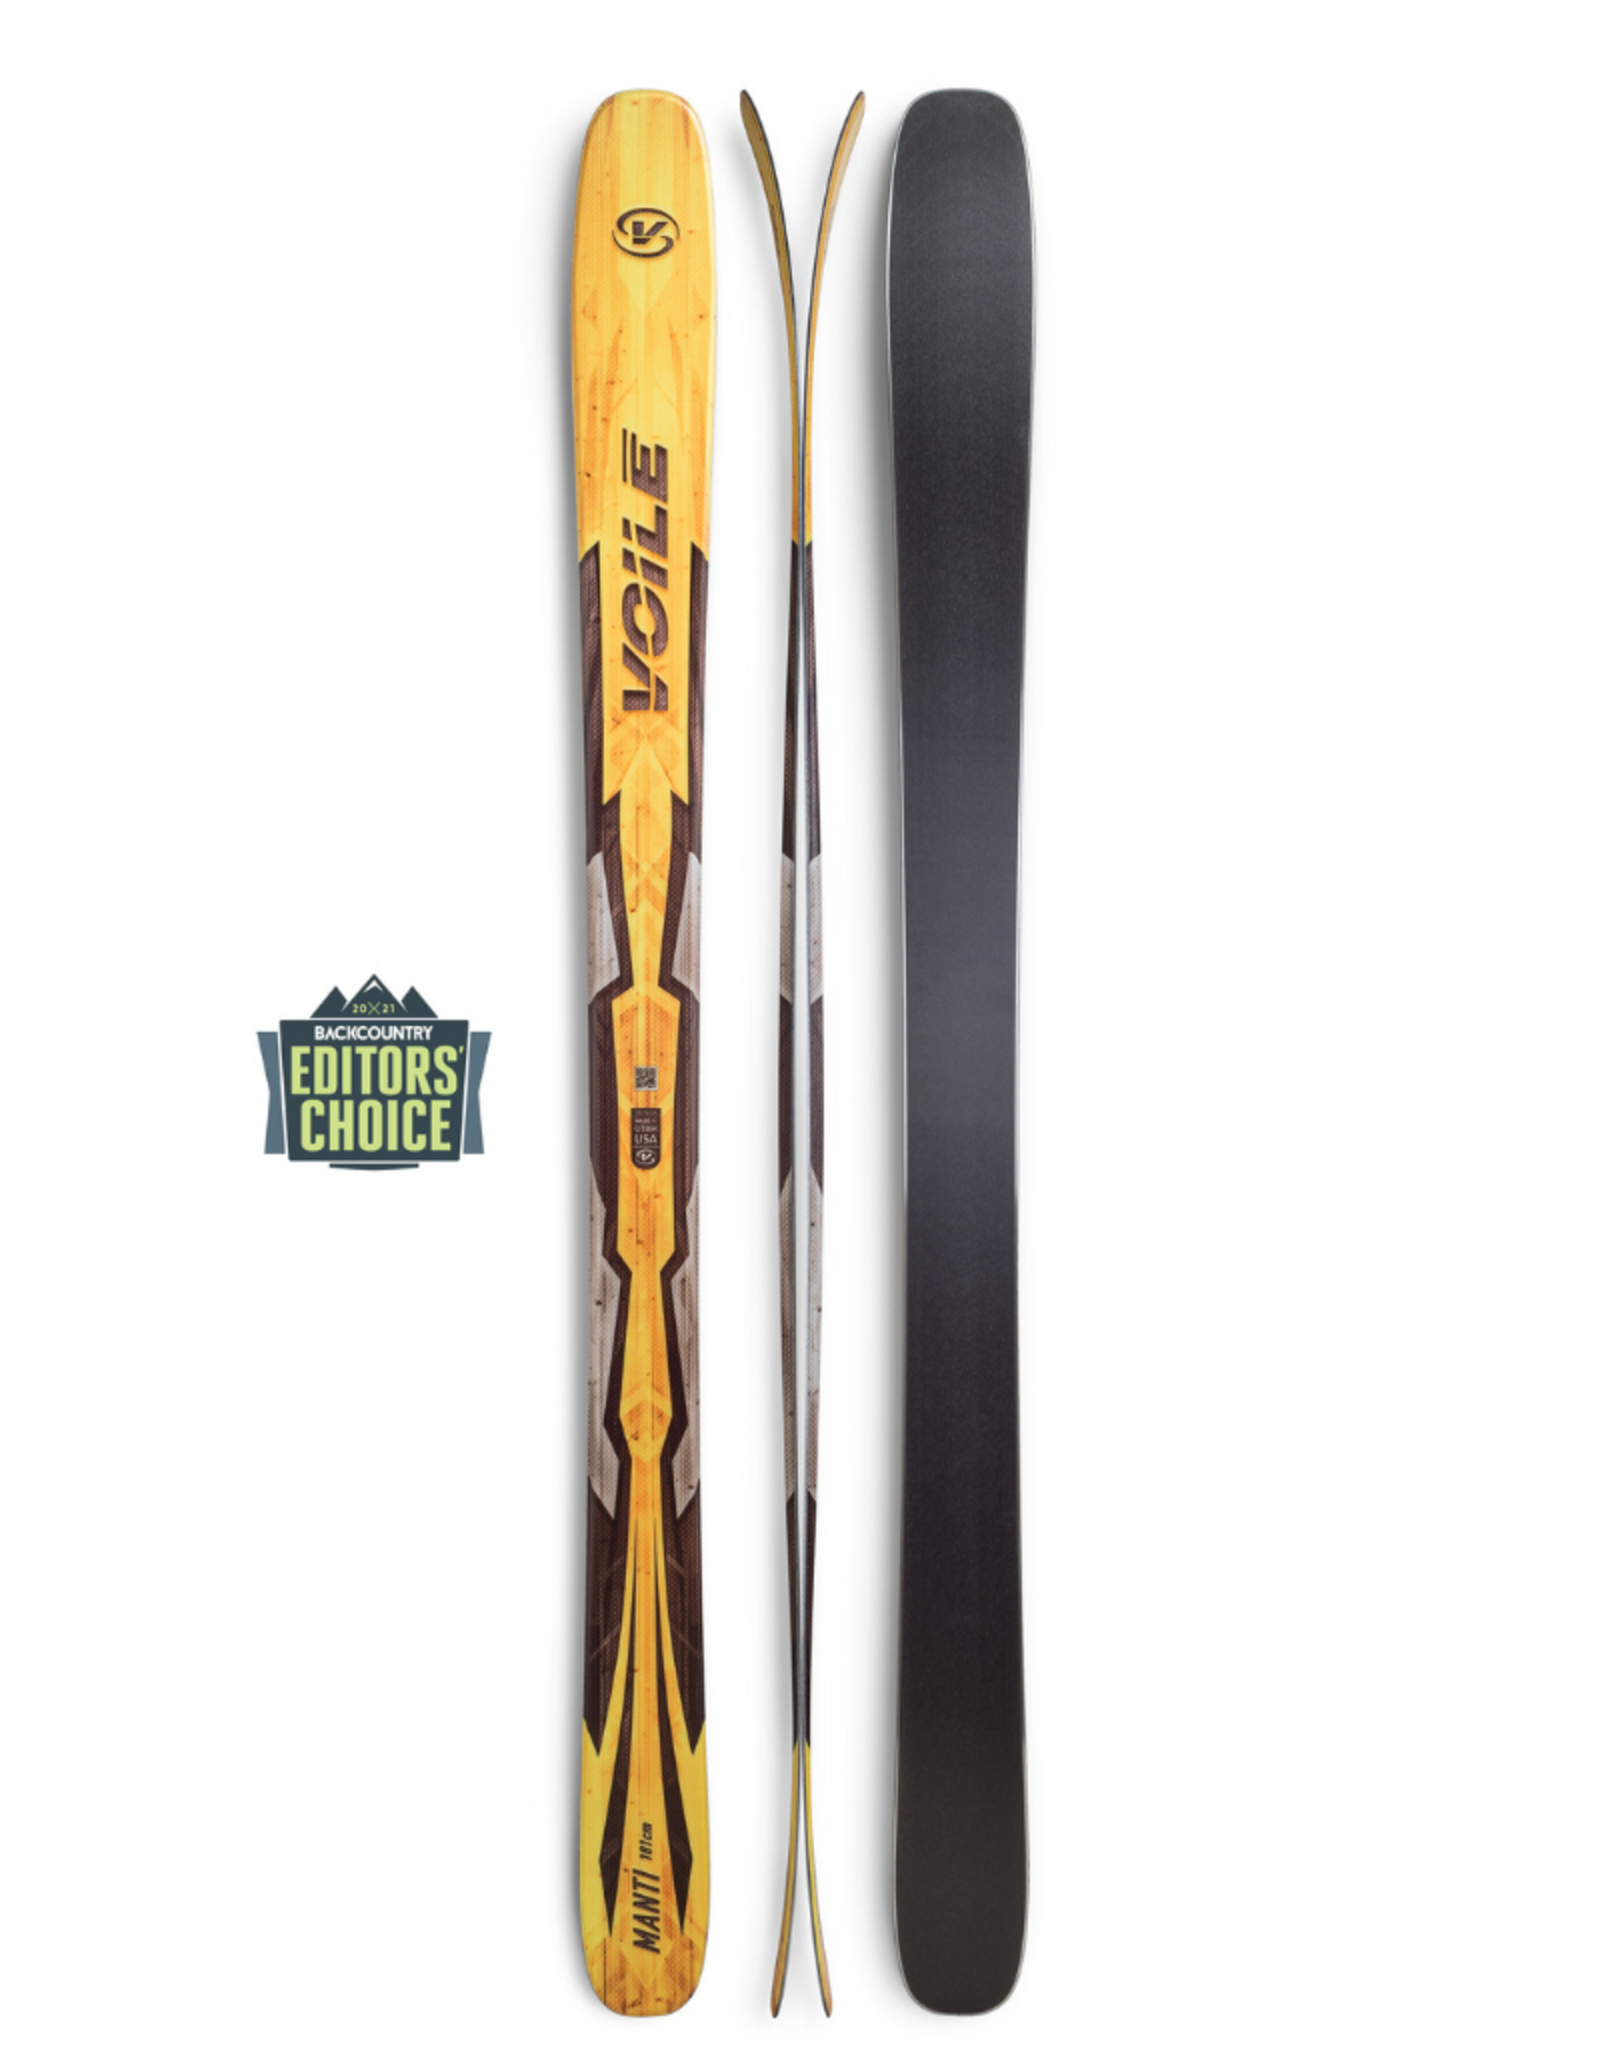 Voile Voile 2021 Manti Tele/AT Skis